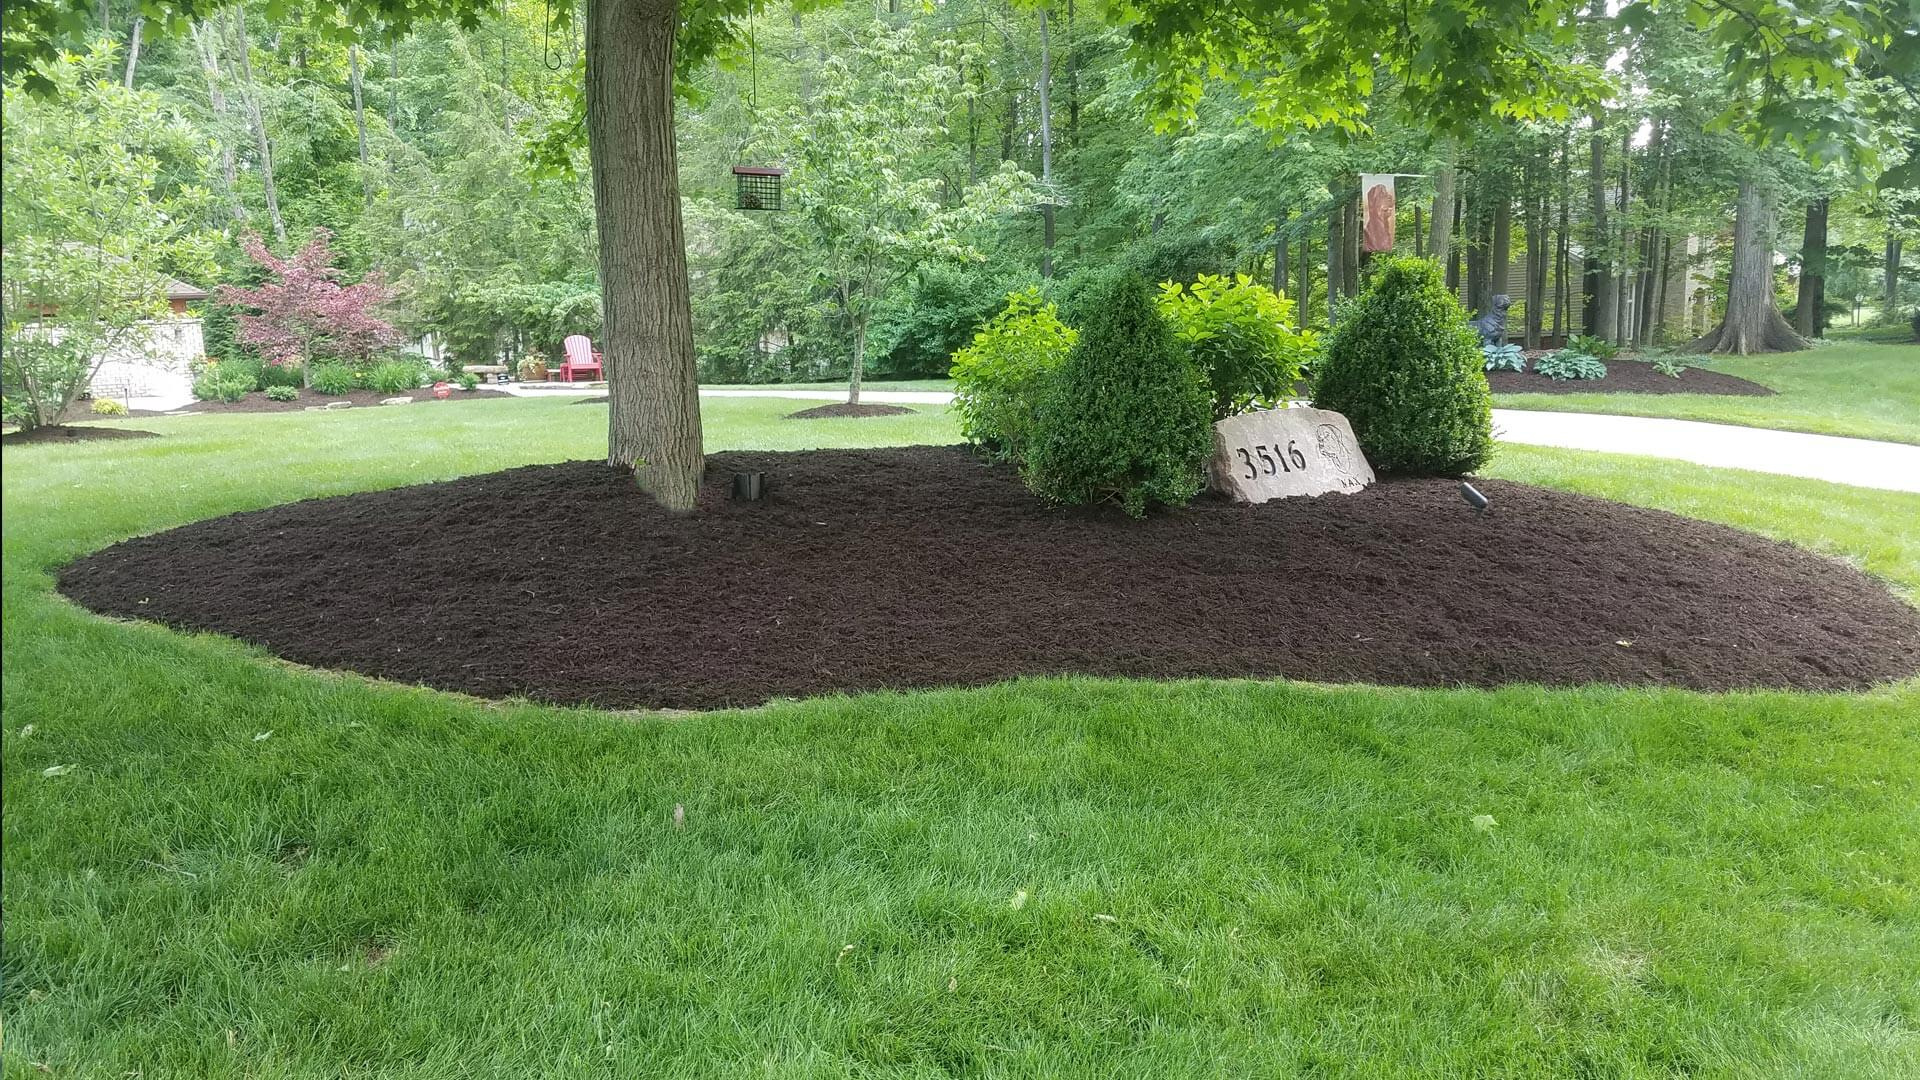 New landscaping bed installed with new mulch and a large rock focus point.